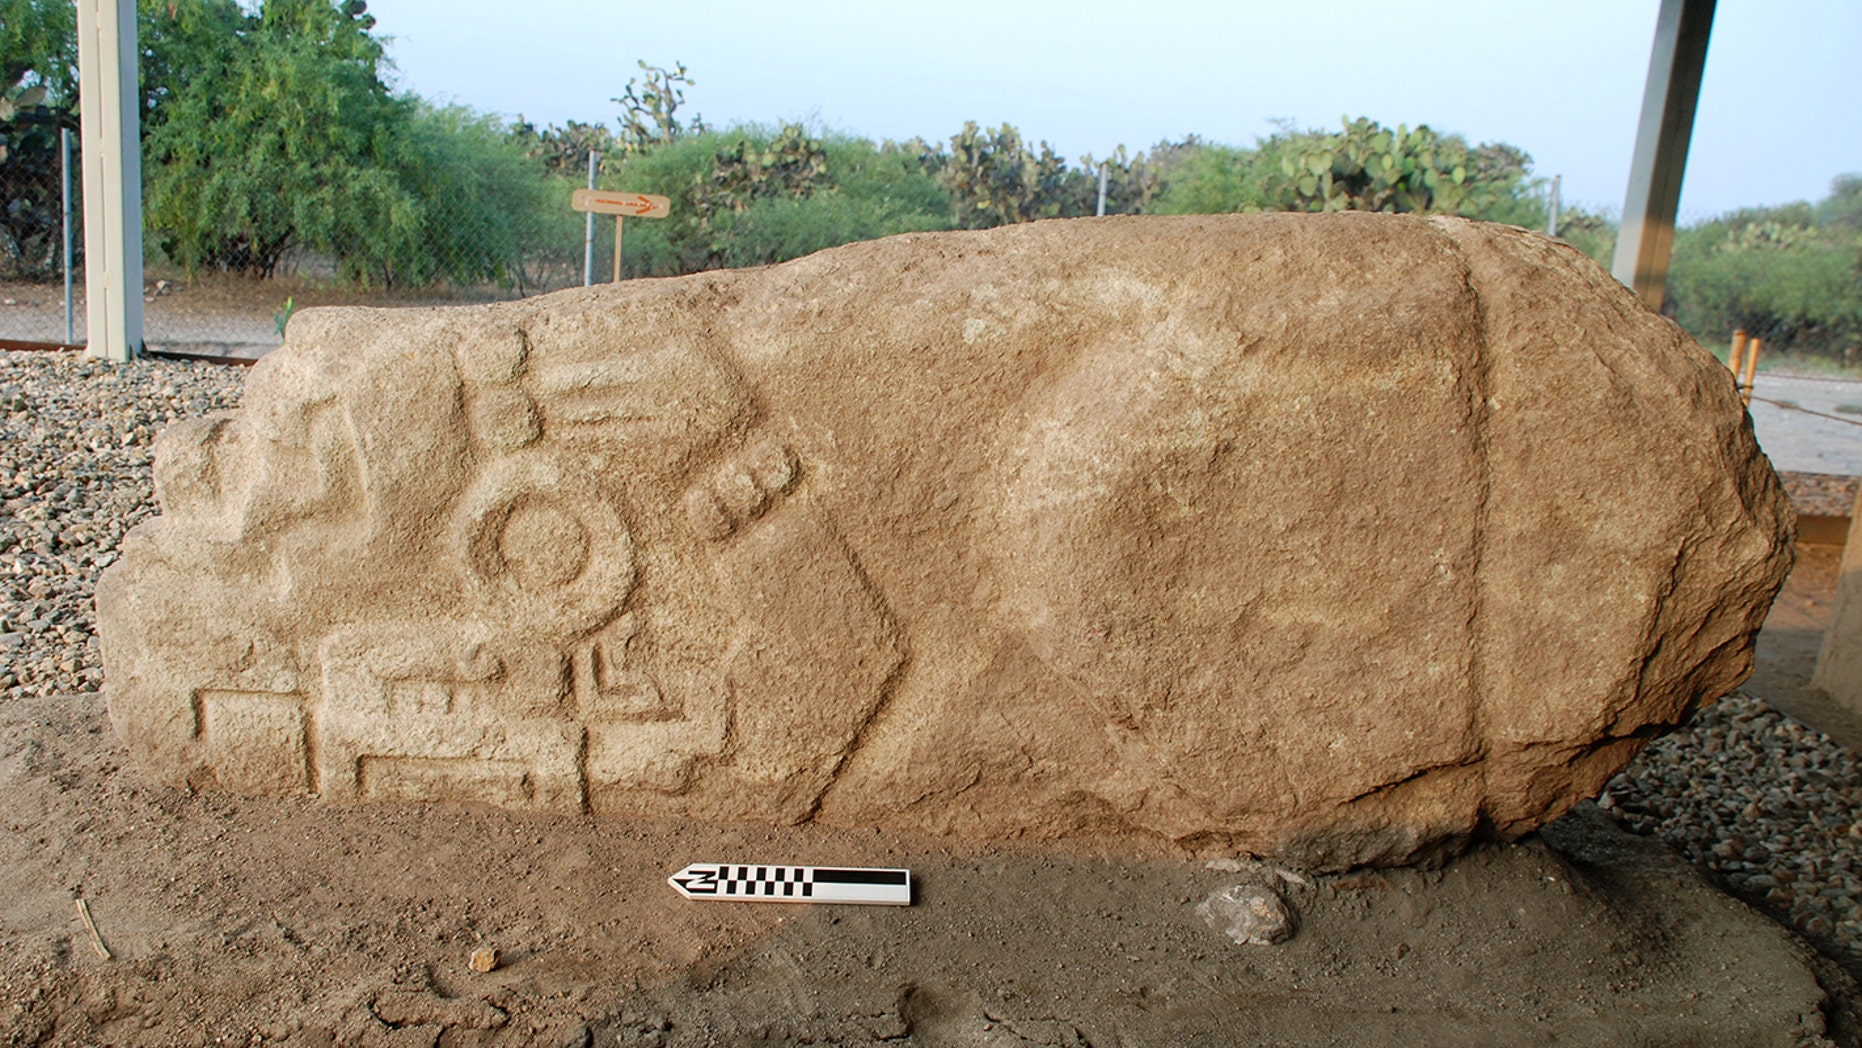 A photo of the crocodile stone discovered by Field Museum archaeologists. The stone was found upside down; the crocodile's rectangular eye is visible on the stone's lower left side, framed on the right by a brac